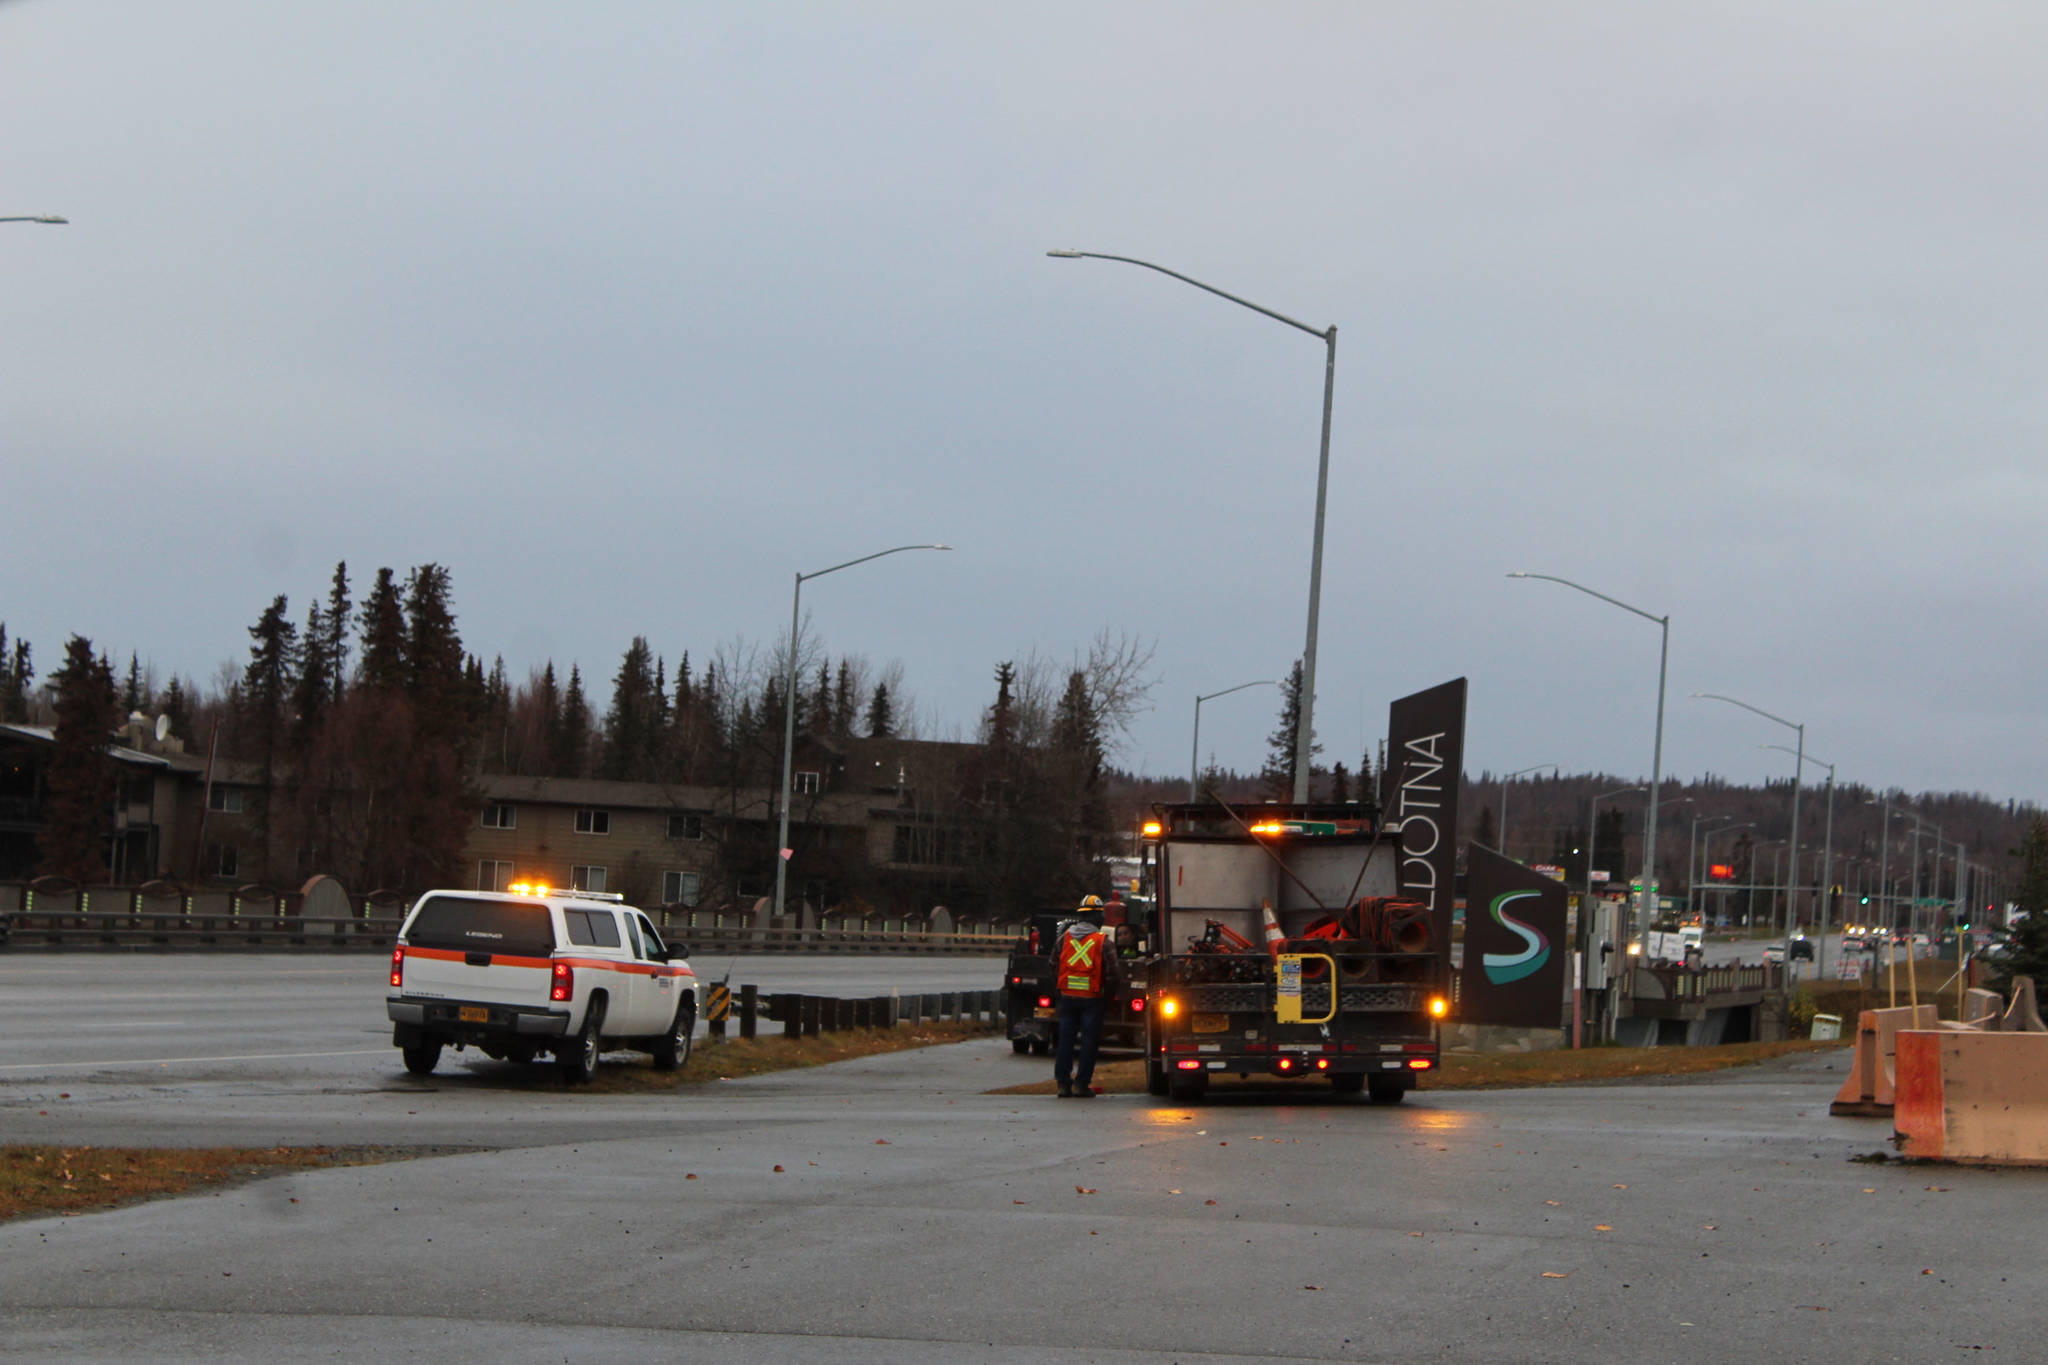 Crews work along the Sterling Highway over the Kenai River on Monday in Soldotna. (Photo by Ashlyn O'Hara/Peninsula Clarion)